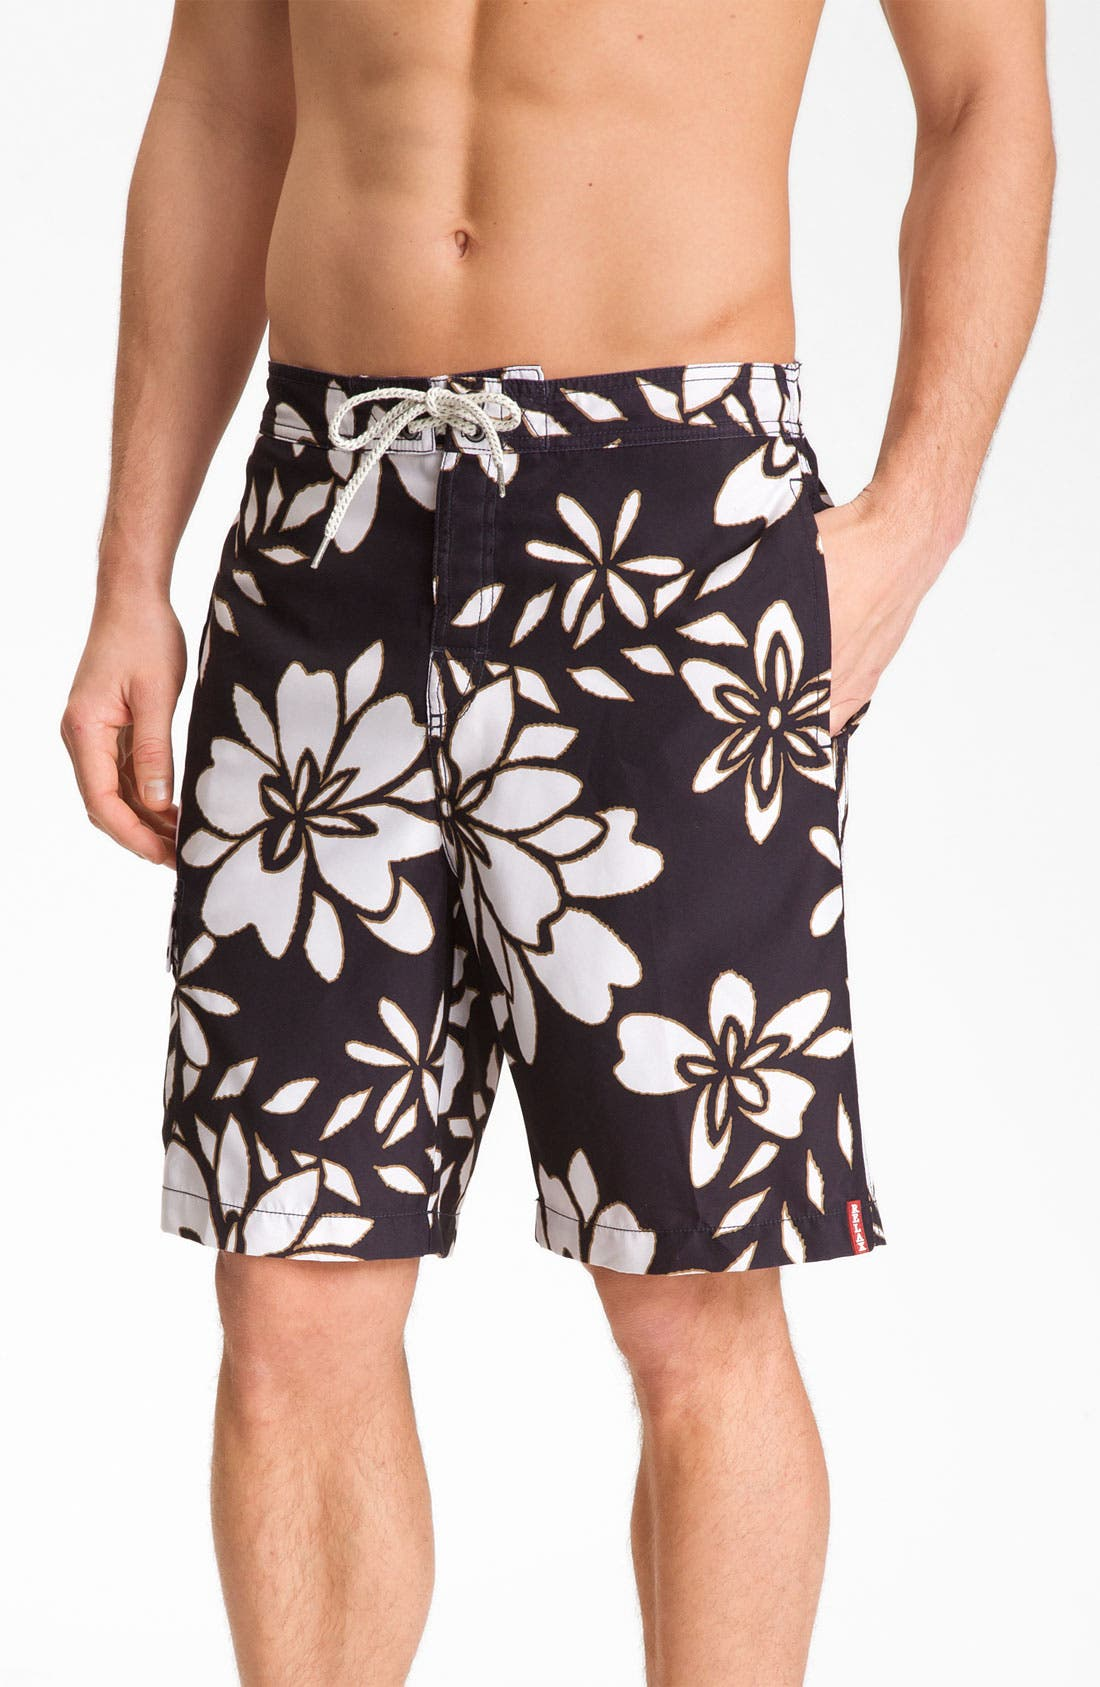 Alternate Image 1 Selected - Tommy Bahama 'Stencil Me In' Swim Trunks (Big & Tall)